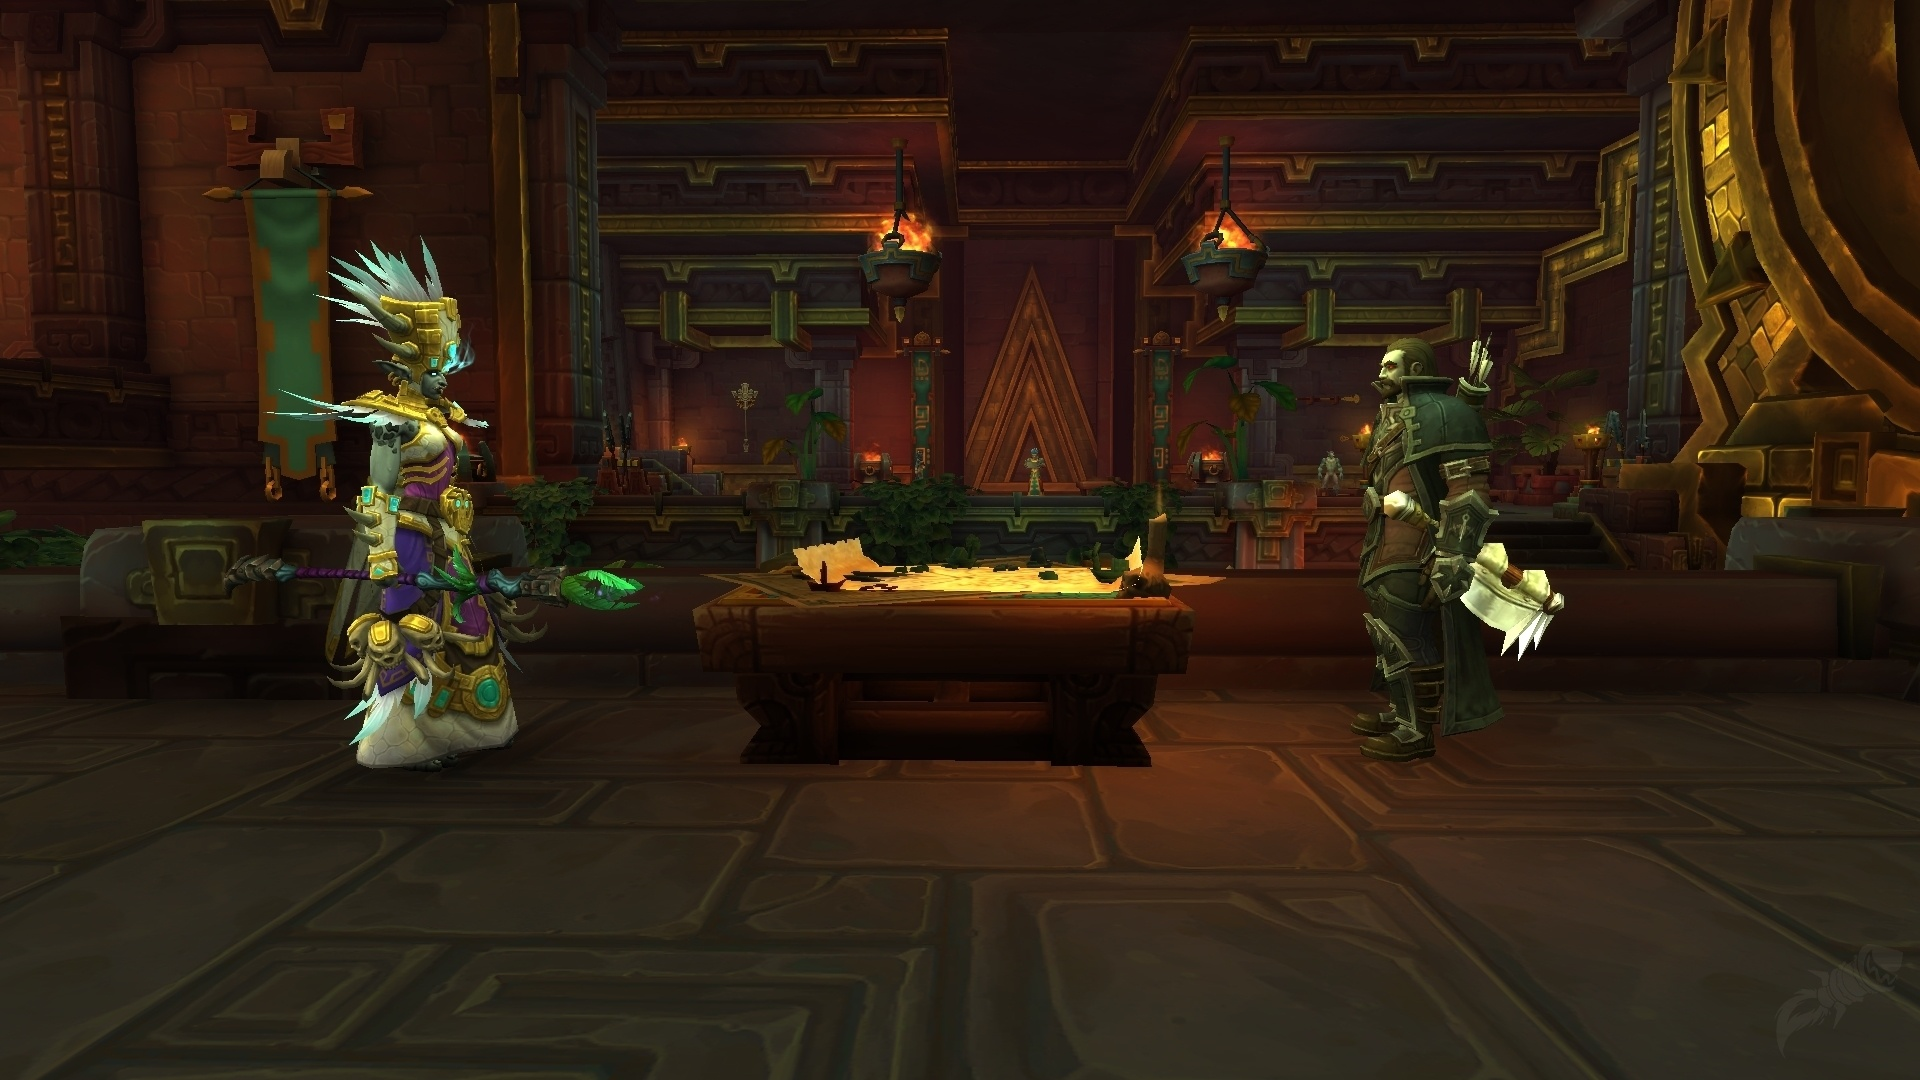 Early Look at New Followers in Battle for Azeroth - Wowhead News